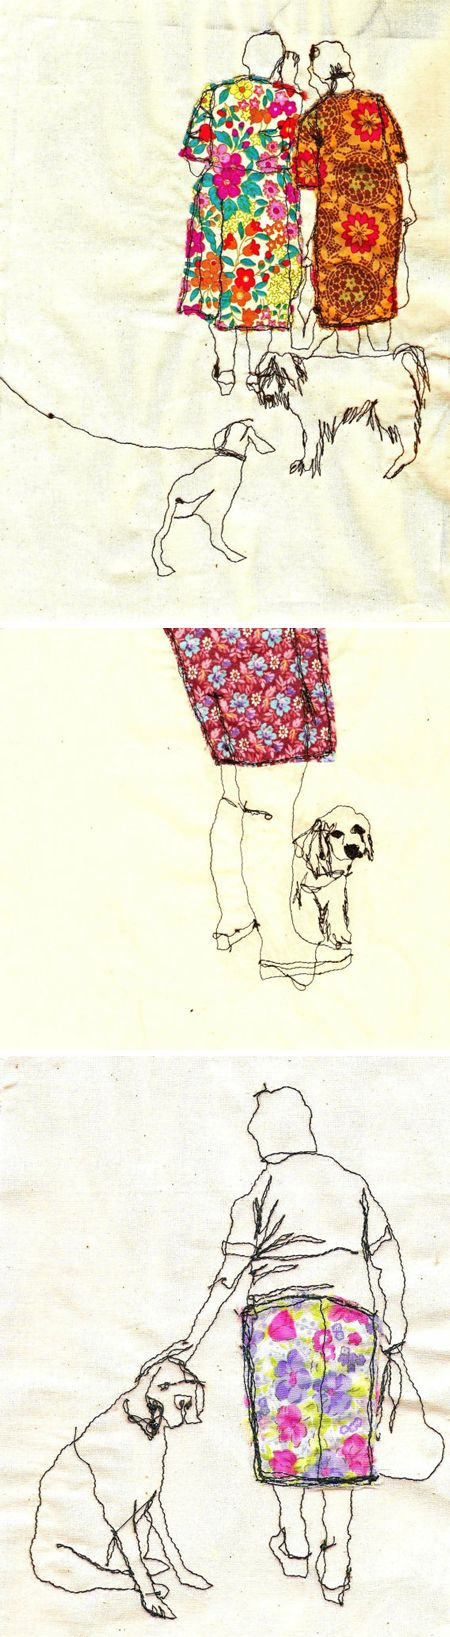 sarah walton illustration/encorporating patterned paper with contour figure drawings/